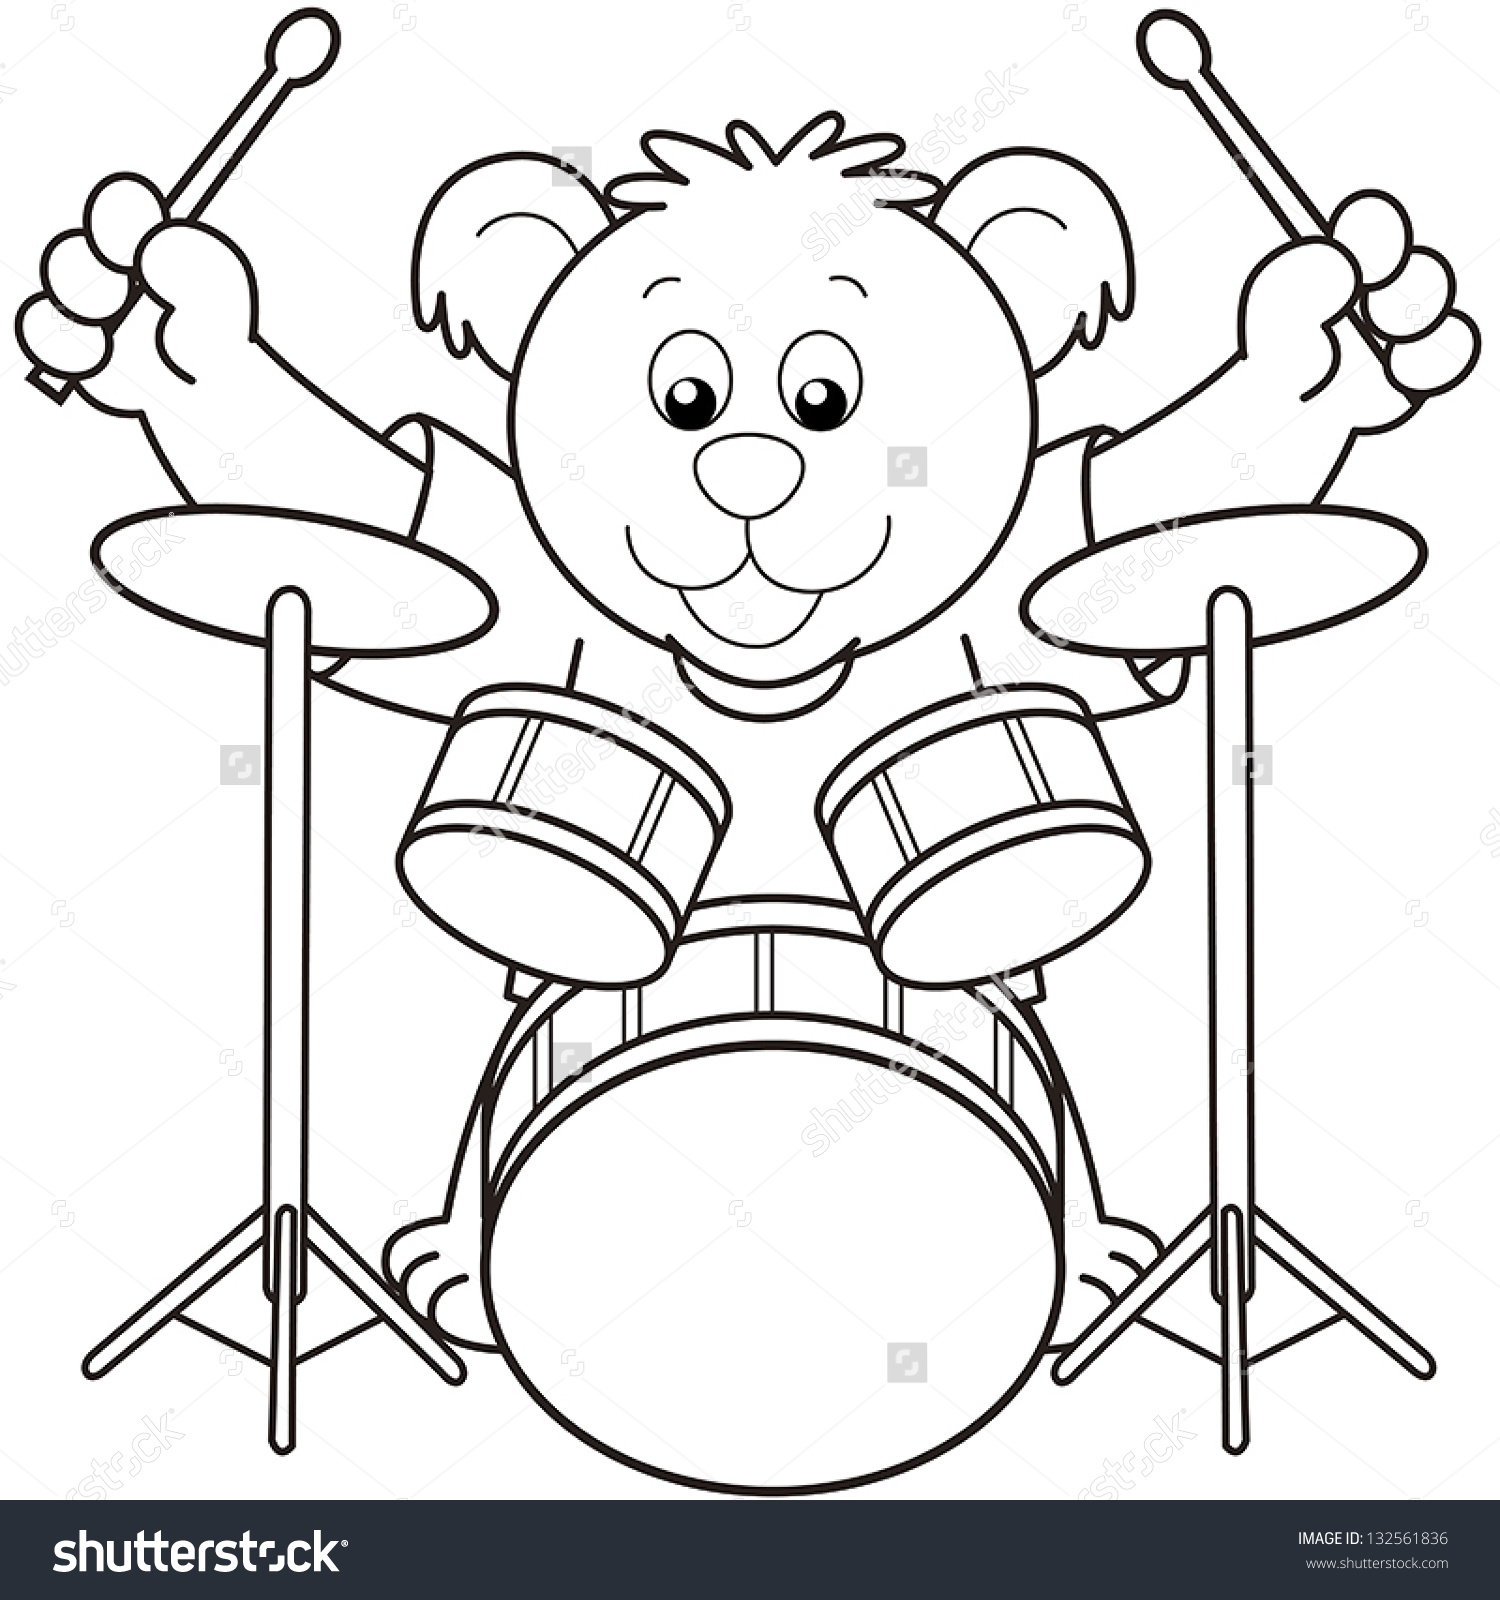 Coloring pictures drums - Cartoon Bear Playing Drums Black And White